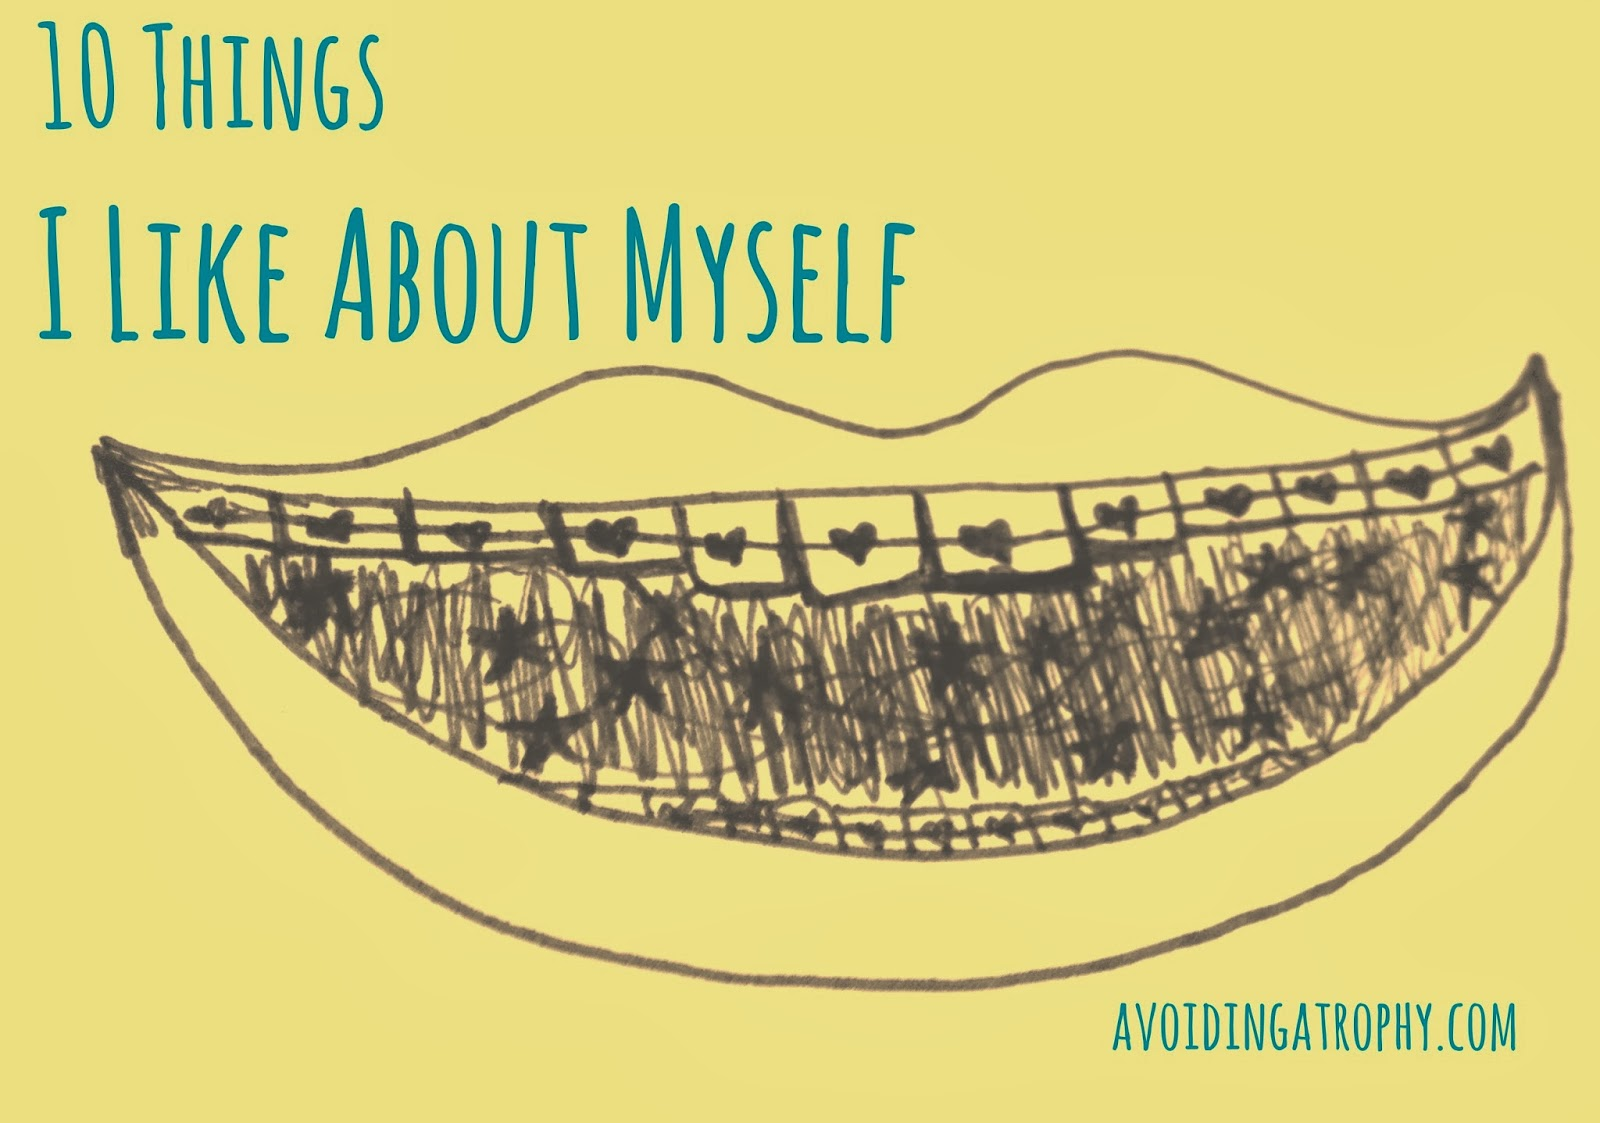 Things I Like About You: Avoiding Atrophy: 10 Things I Like About Myself